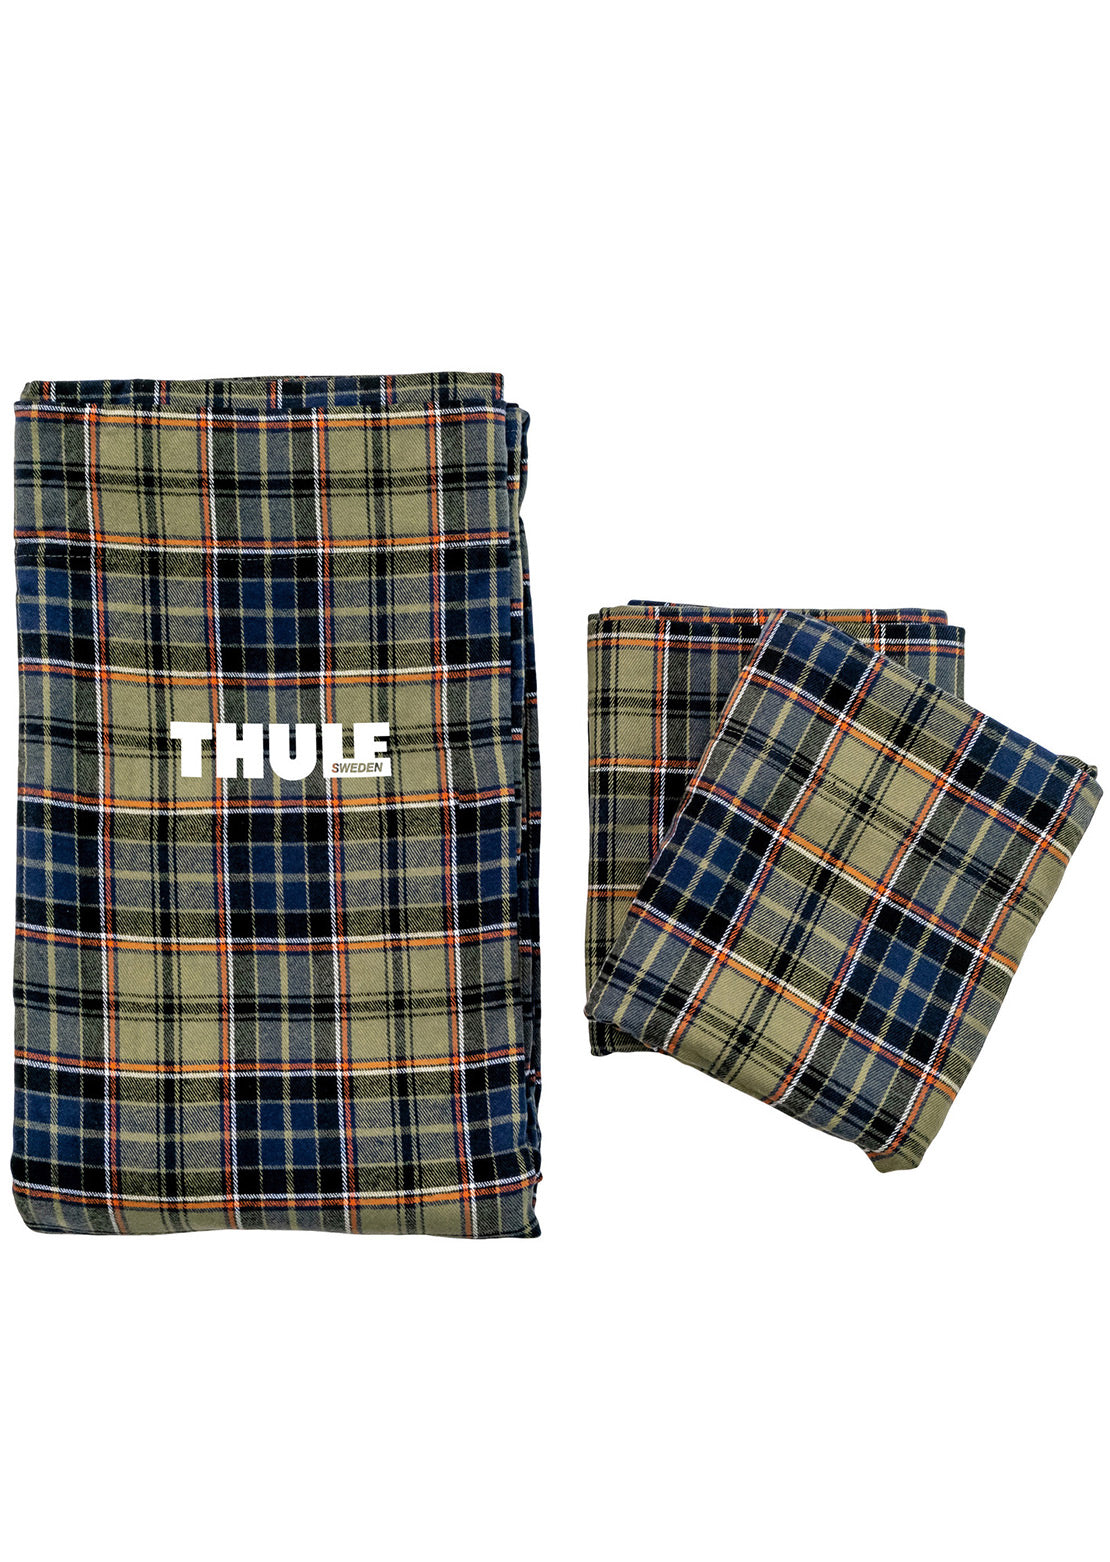 Thule Flannel Sheets for Hybox Tent Plaid Blue-Green